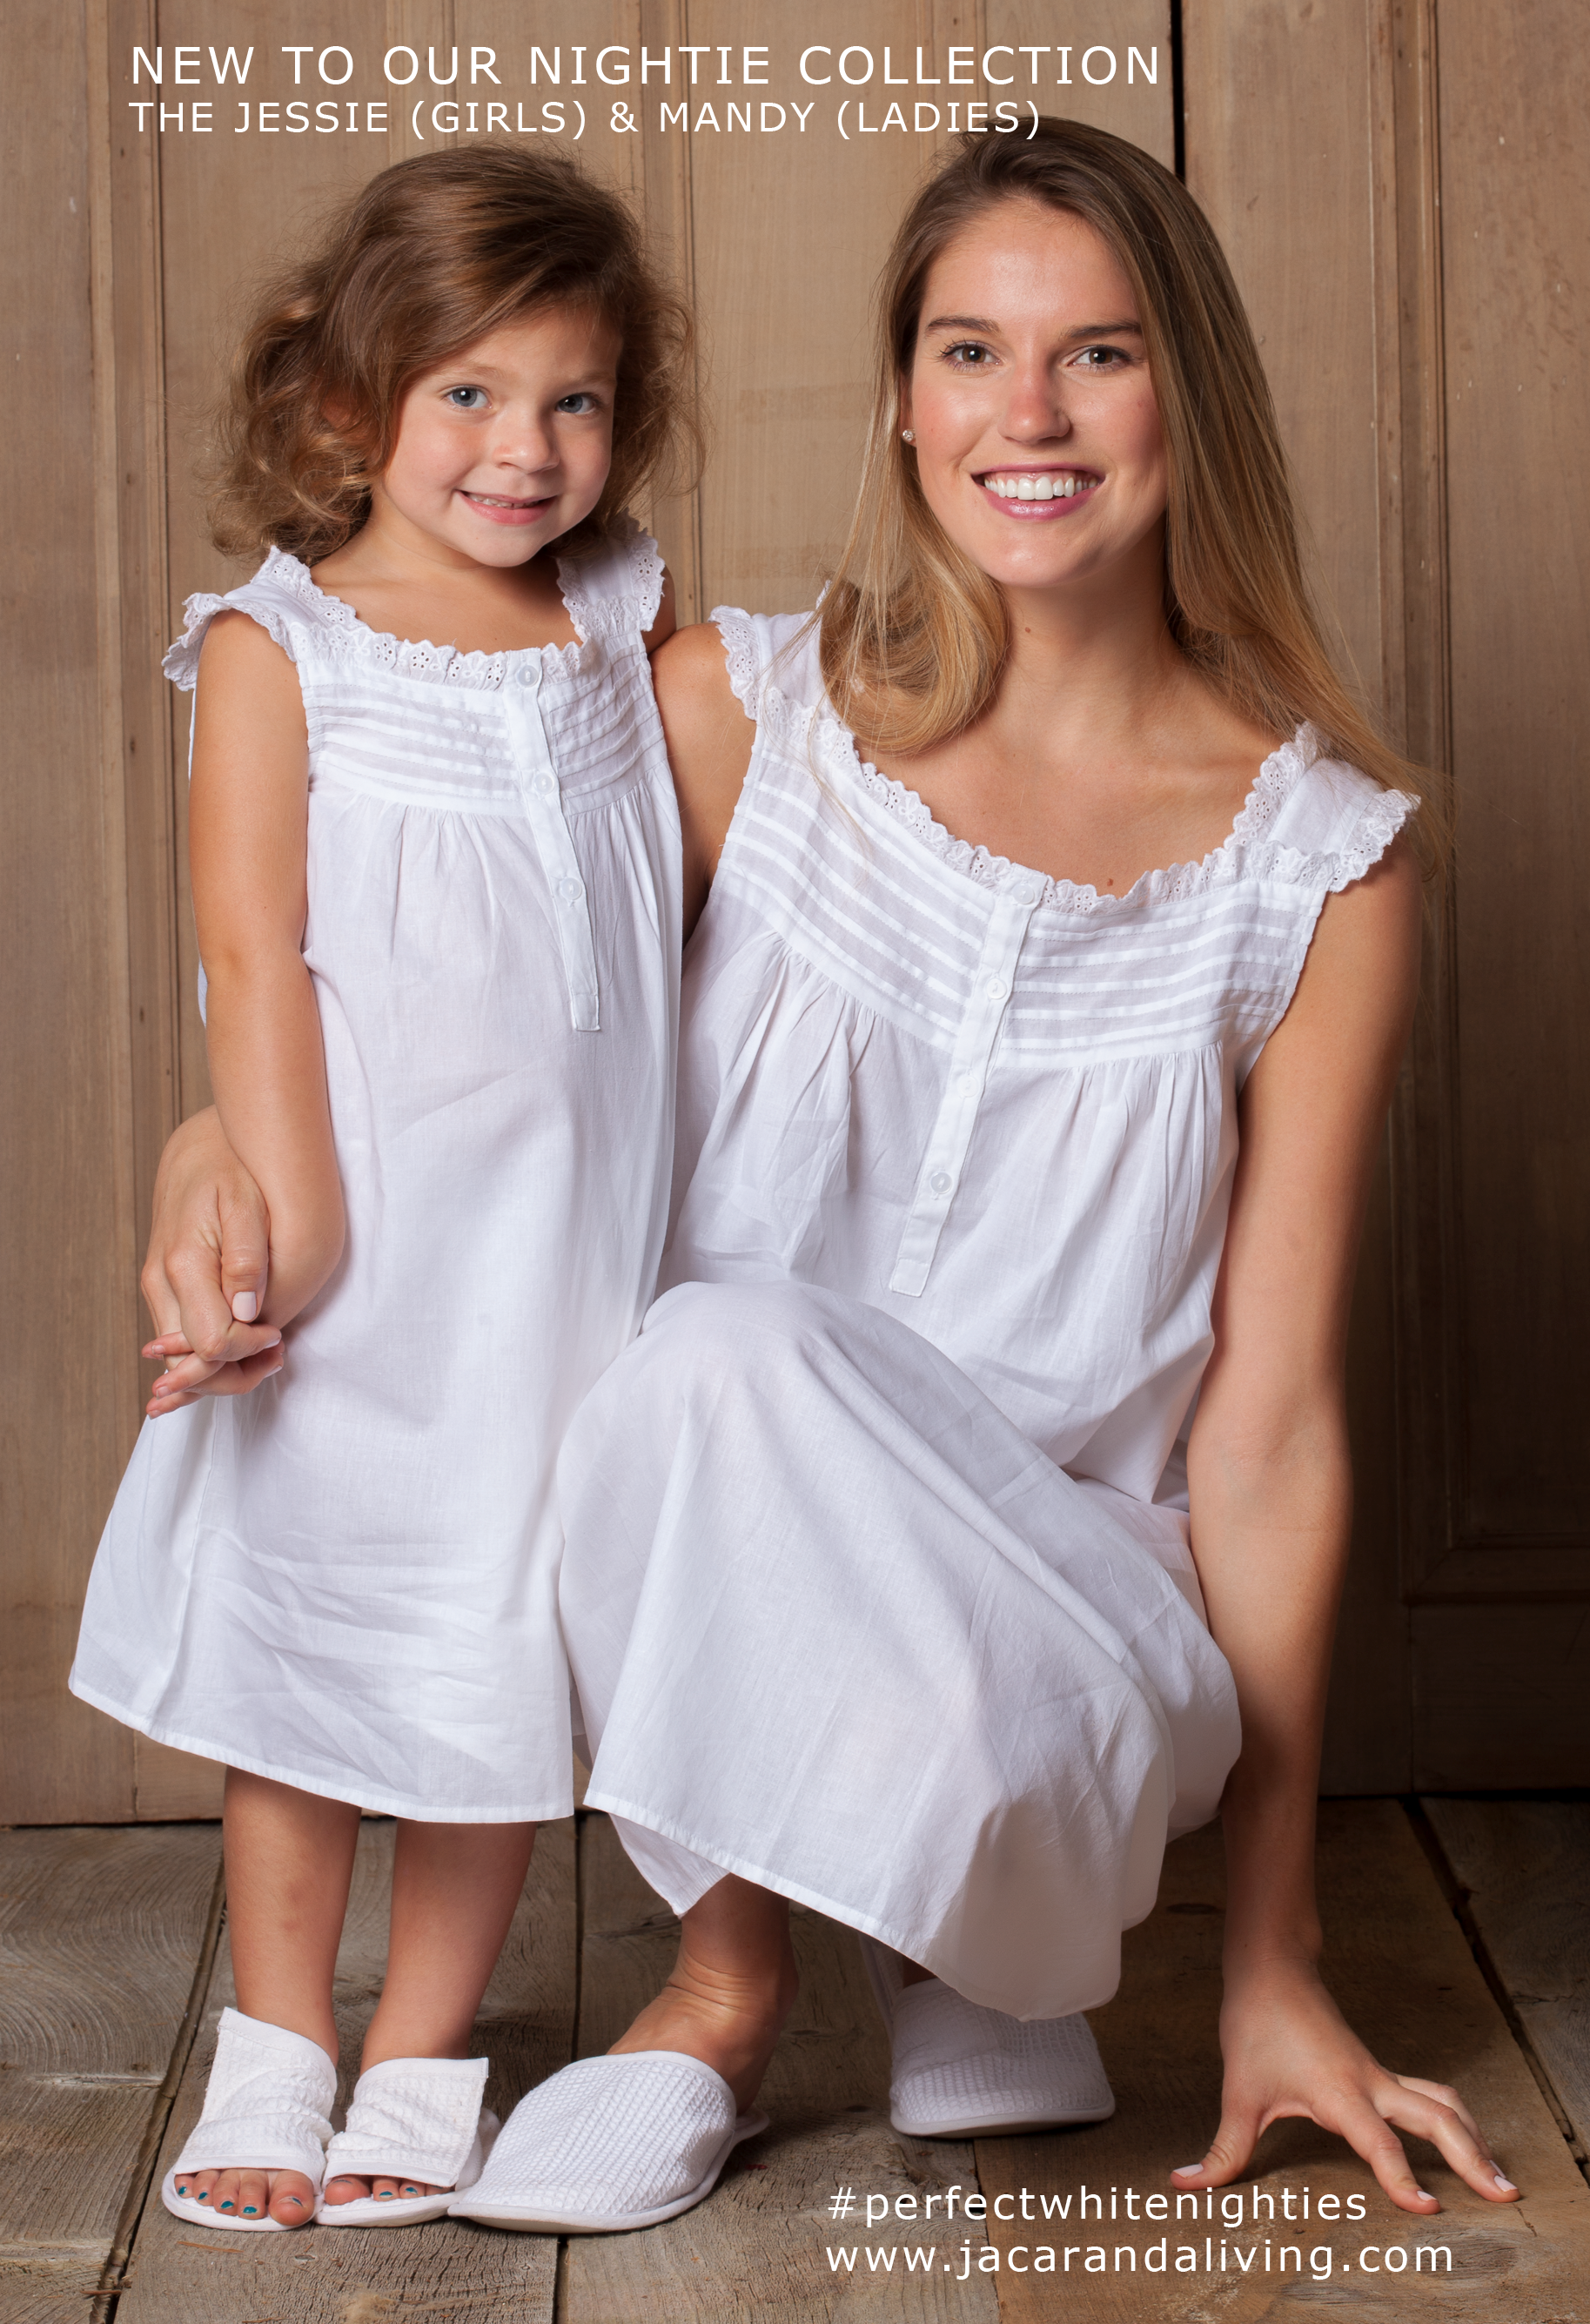 07b9f47956 White Cotton Nightgowns for Ladies and White English Cotton Dresses for  Little girls. Jacaranda Living s